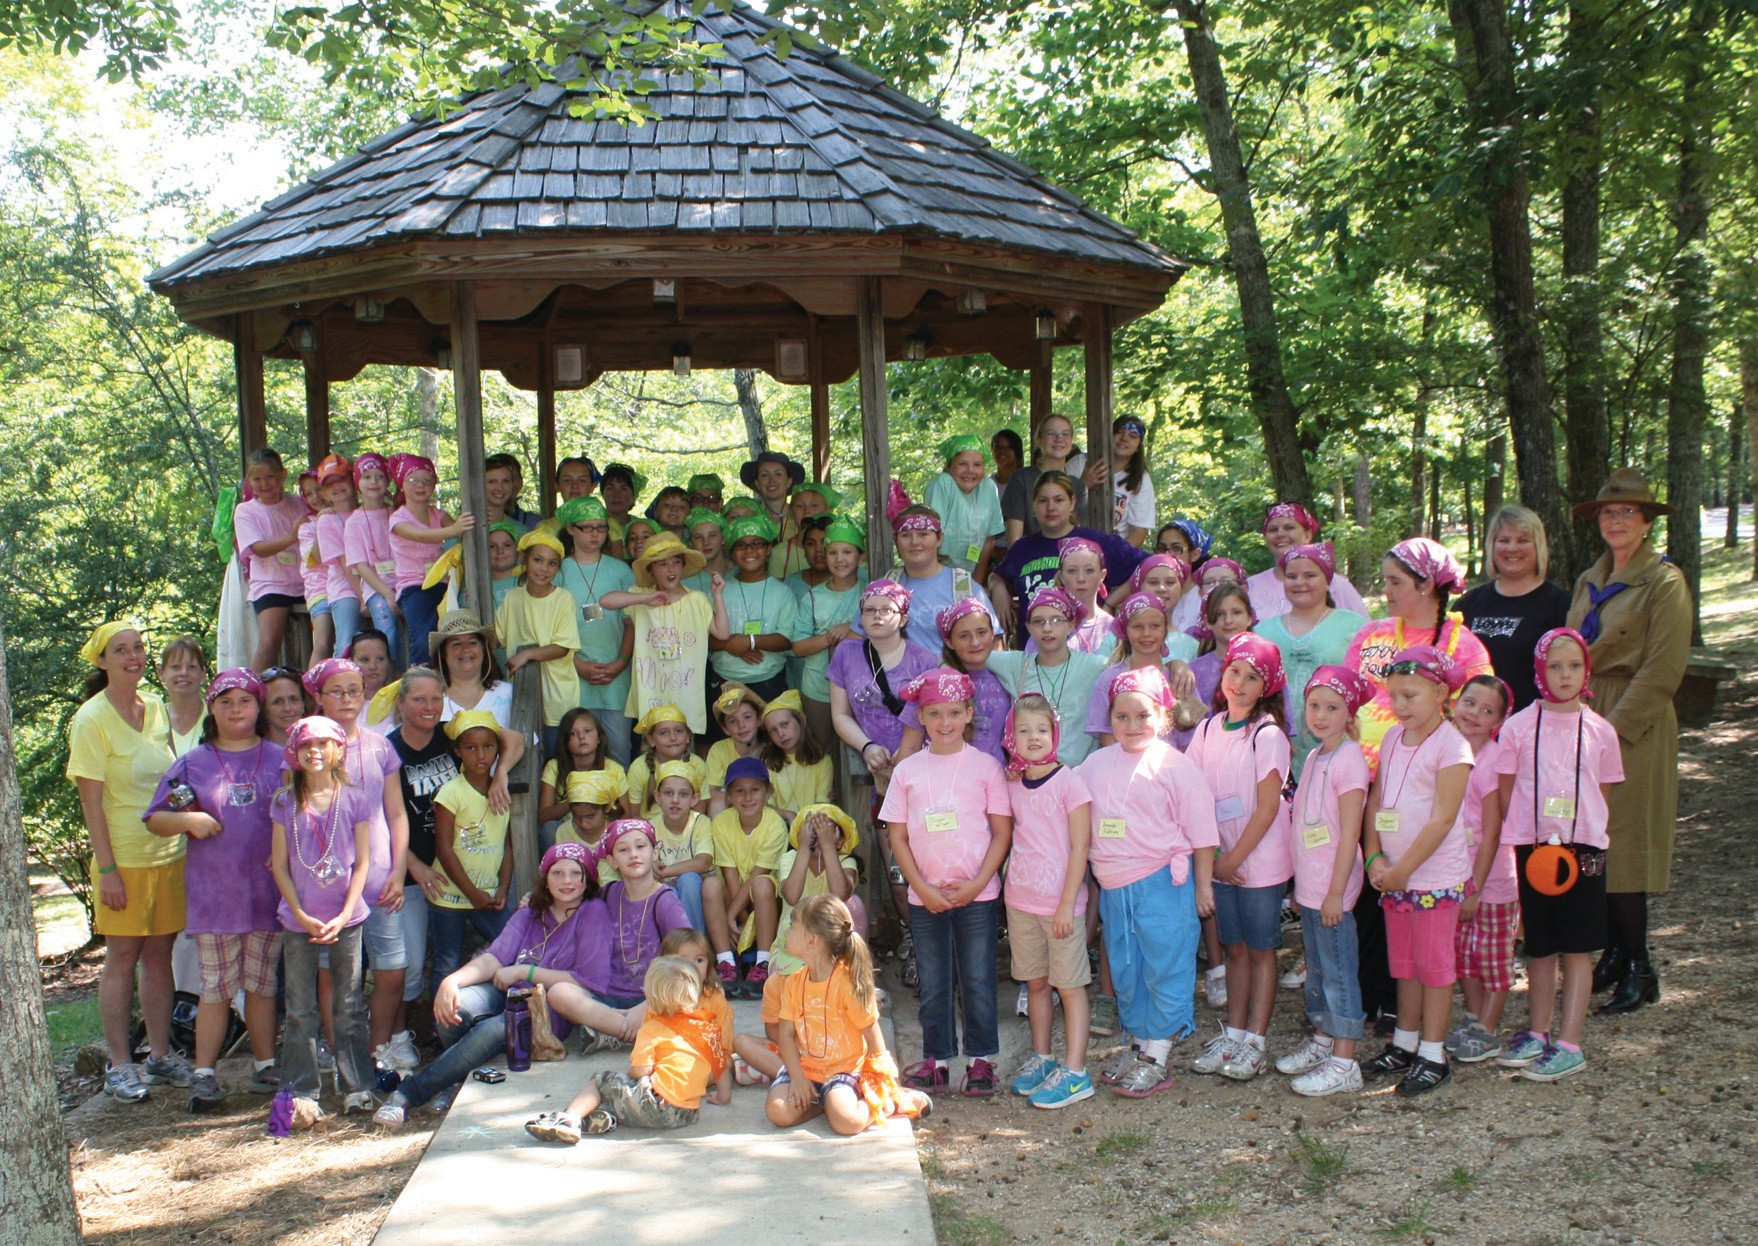 The Girl Scouts' annual daycamp has been at Palisades Park for more than 30 years.